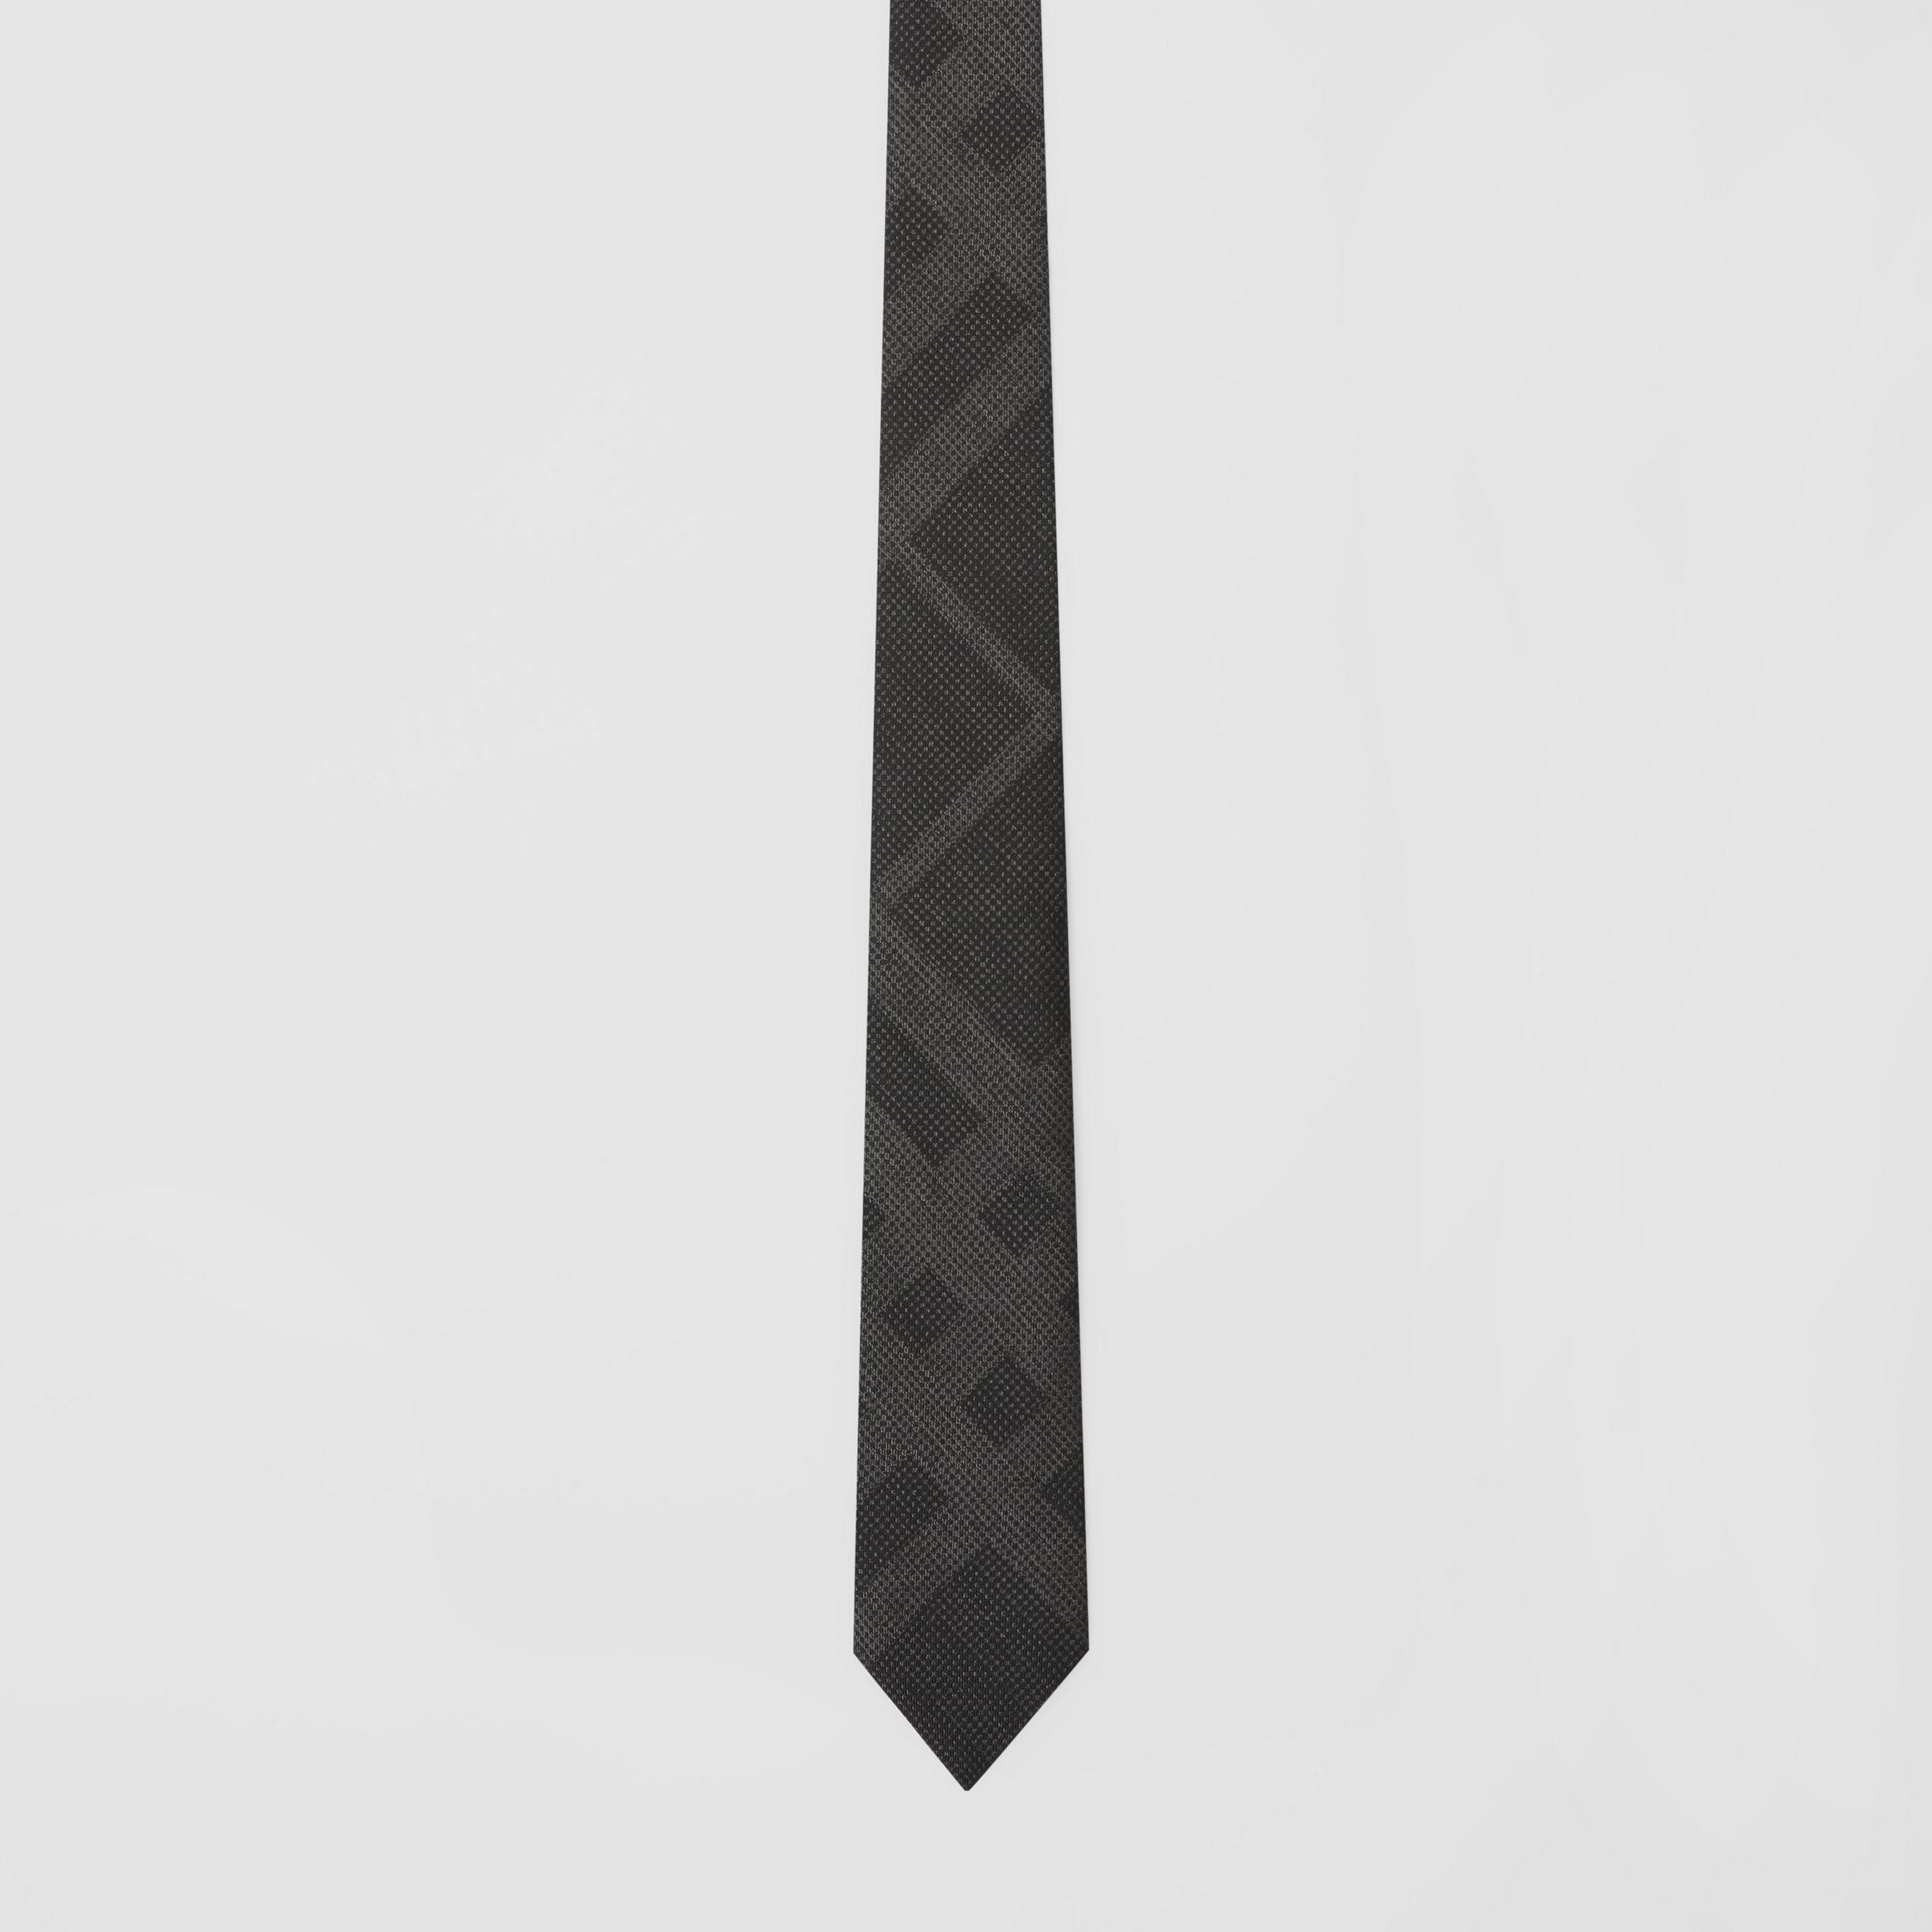 Classic Cut Check Silk Tie in Dark Grey Melange - Men | Burberry - 4